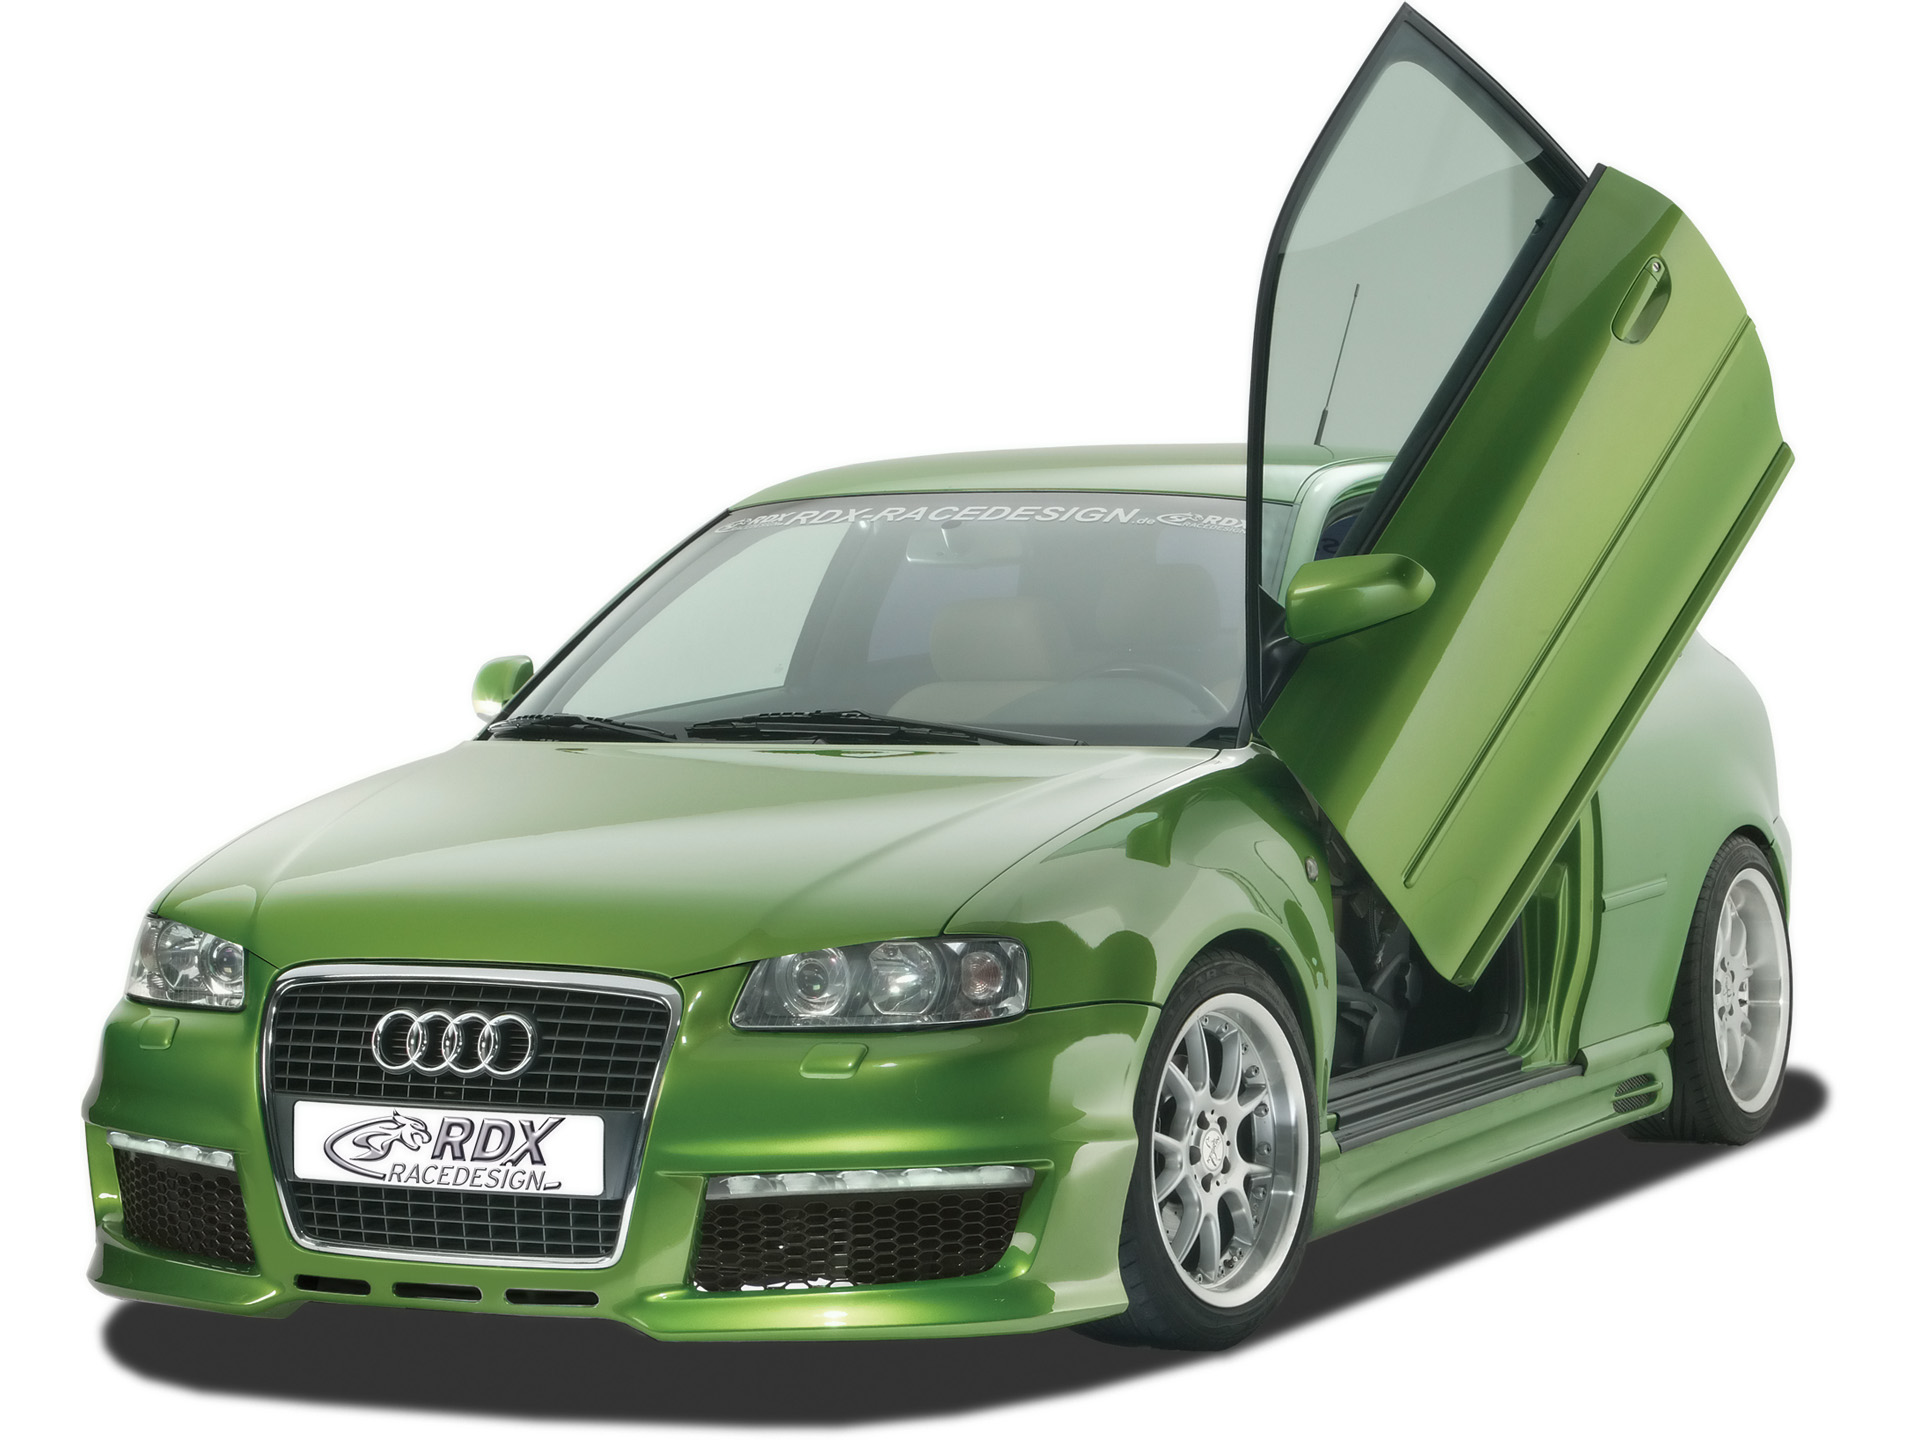 rdx racedesign audi a3 8l photos photogallery with 4 pics. Black Bedroom Furniture Sets. Home Design Ideas